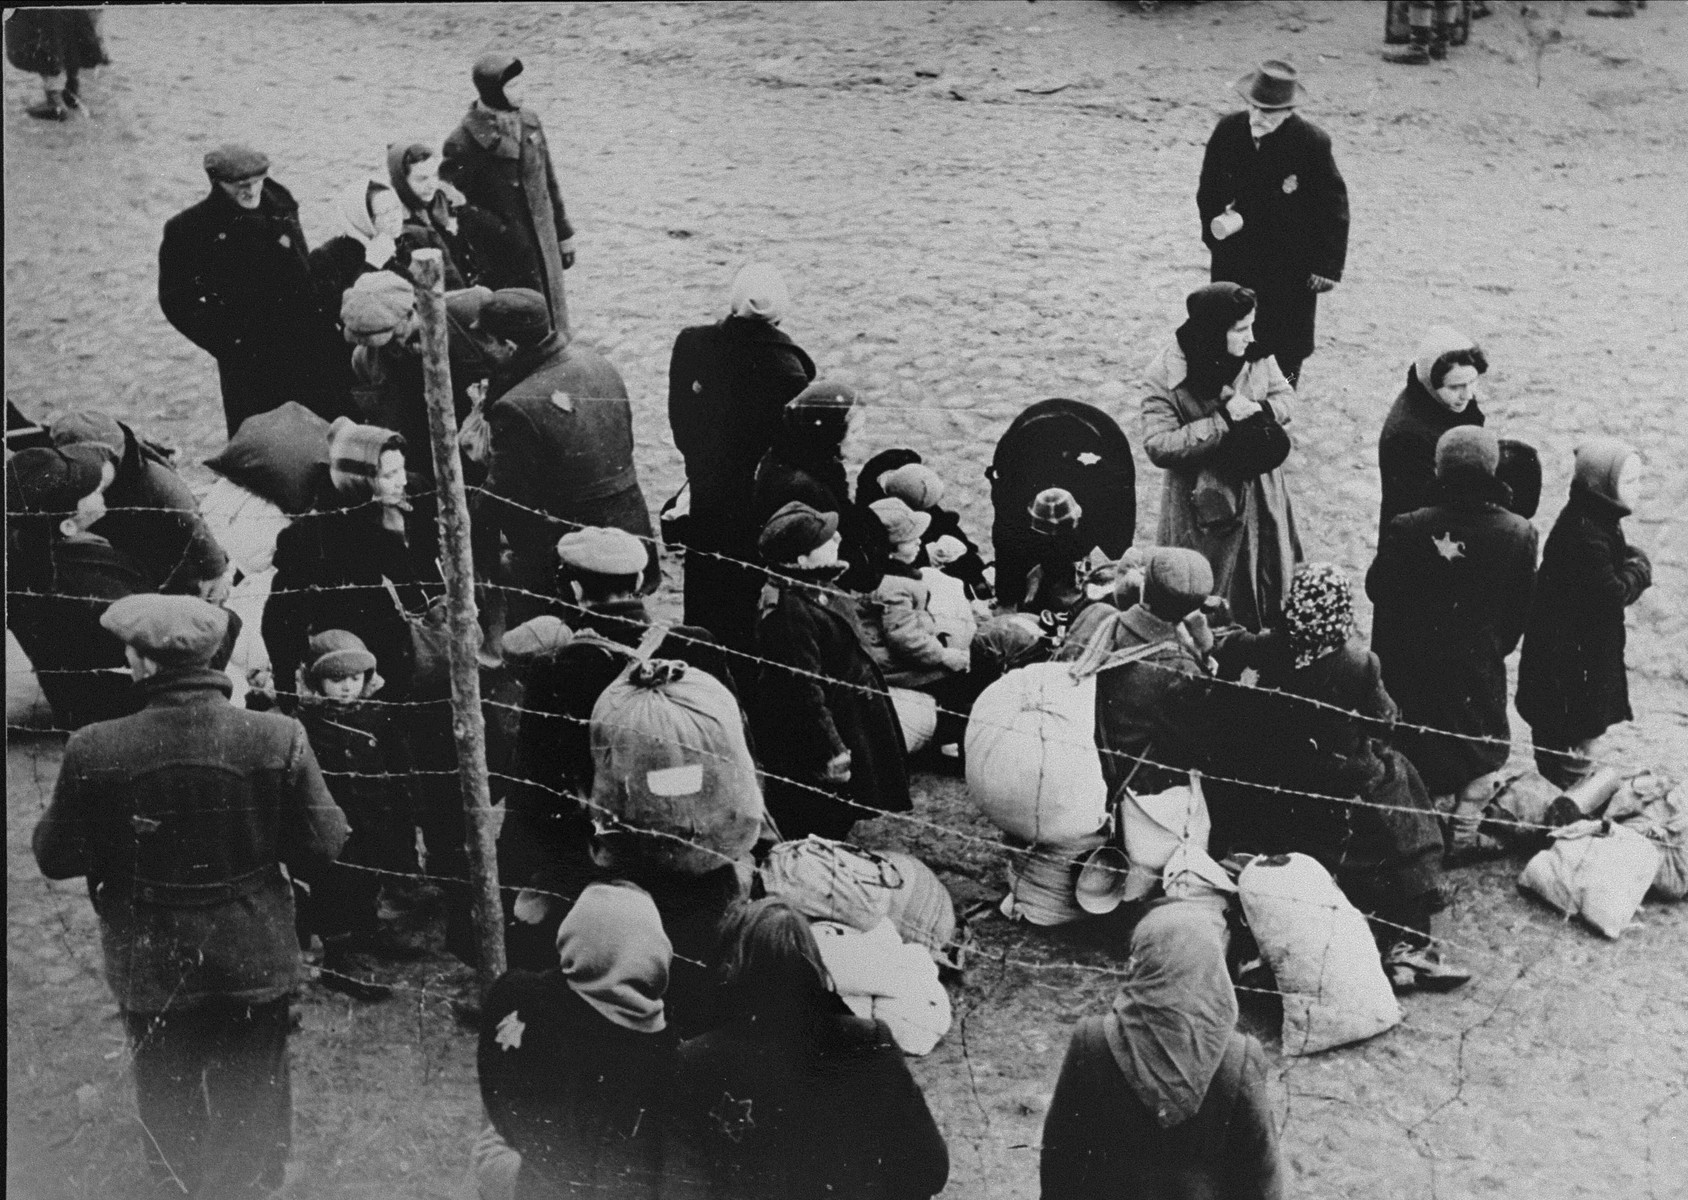 A group of Jews is gathered at an assembly point in the Kovno ghetto during a deportation action.   [Though the photo seems to be part of the series of the deportation to Estonia, the family has been identified as the Ipp family who were sent to Riga.  Among those pictured may be Jacob Ipp (now Ipson, the boy standing on the left, behind the barbed wire fence), his mother, Etta (Butrimowitz) Ipp (standing behind him), and Chananya Butrimowitz (Etta's father, carrying a backpack).]